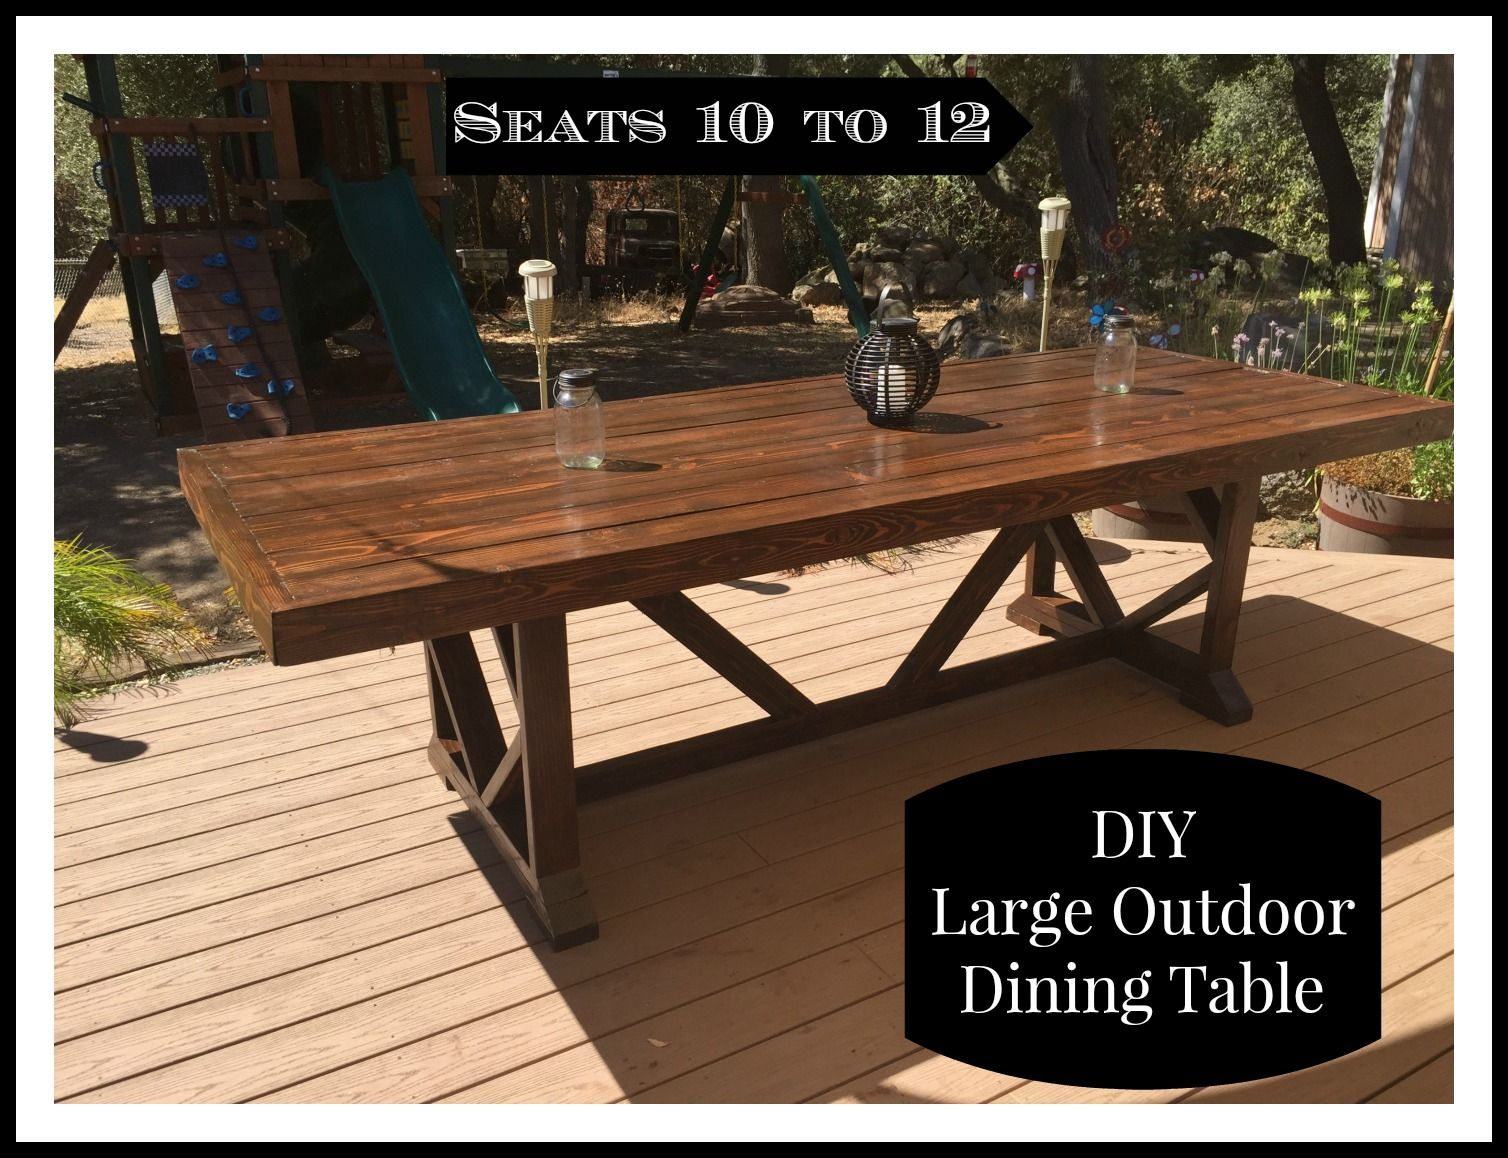 DIY Large Outdoor Dining Table